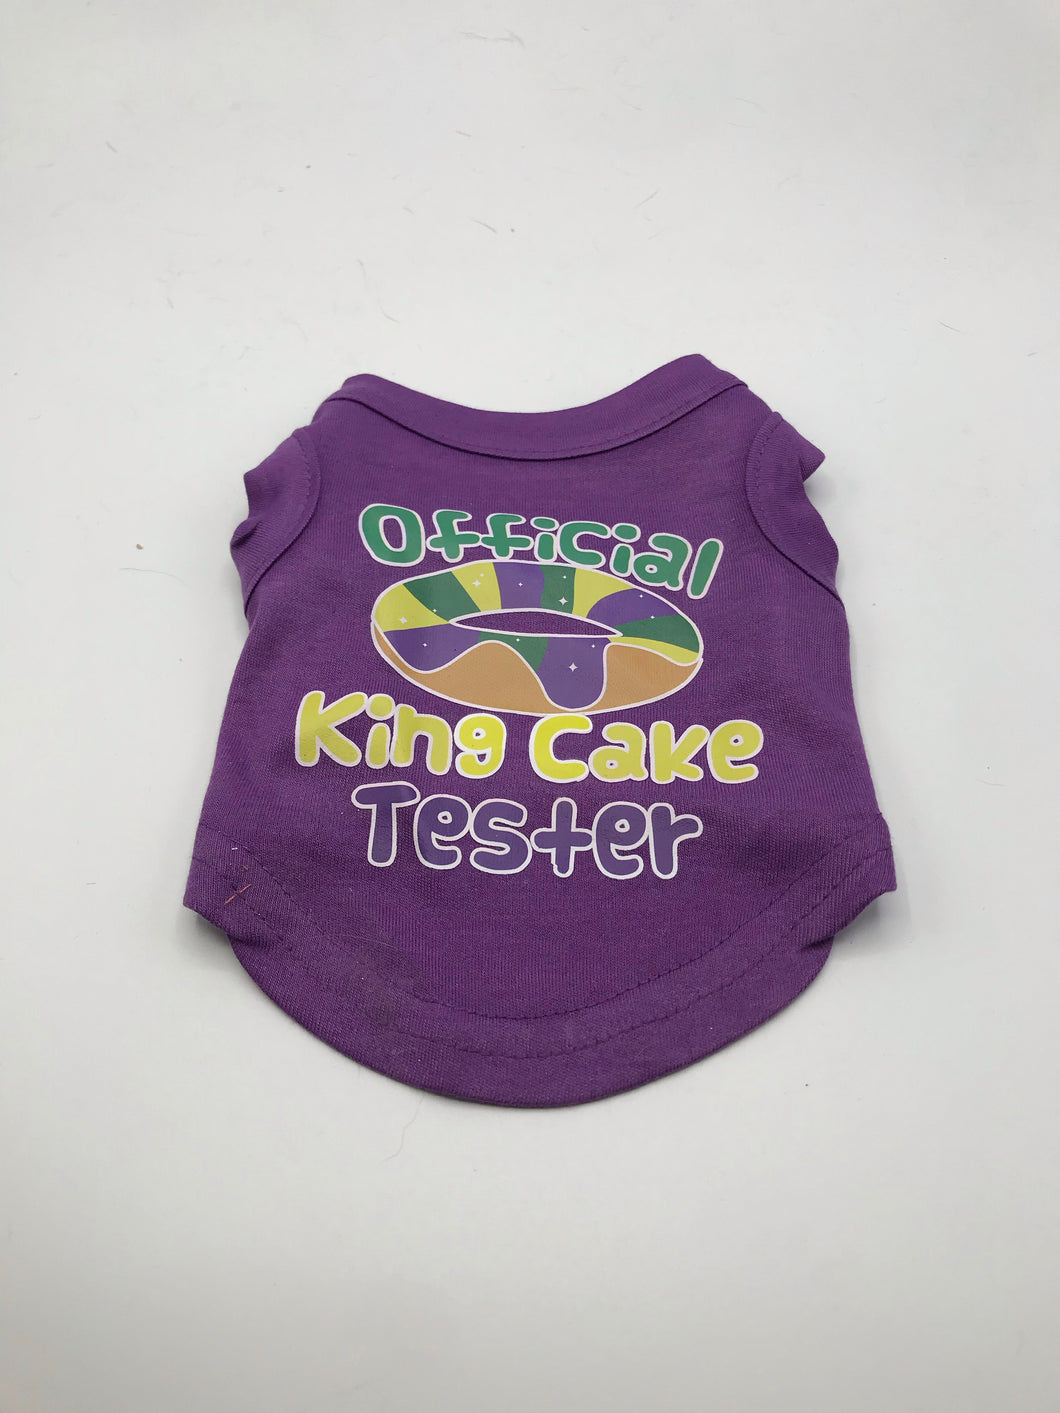 King Cake Taster Screen Print Dog Shirt.